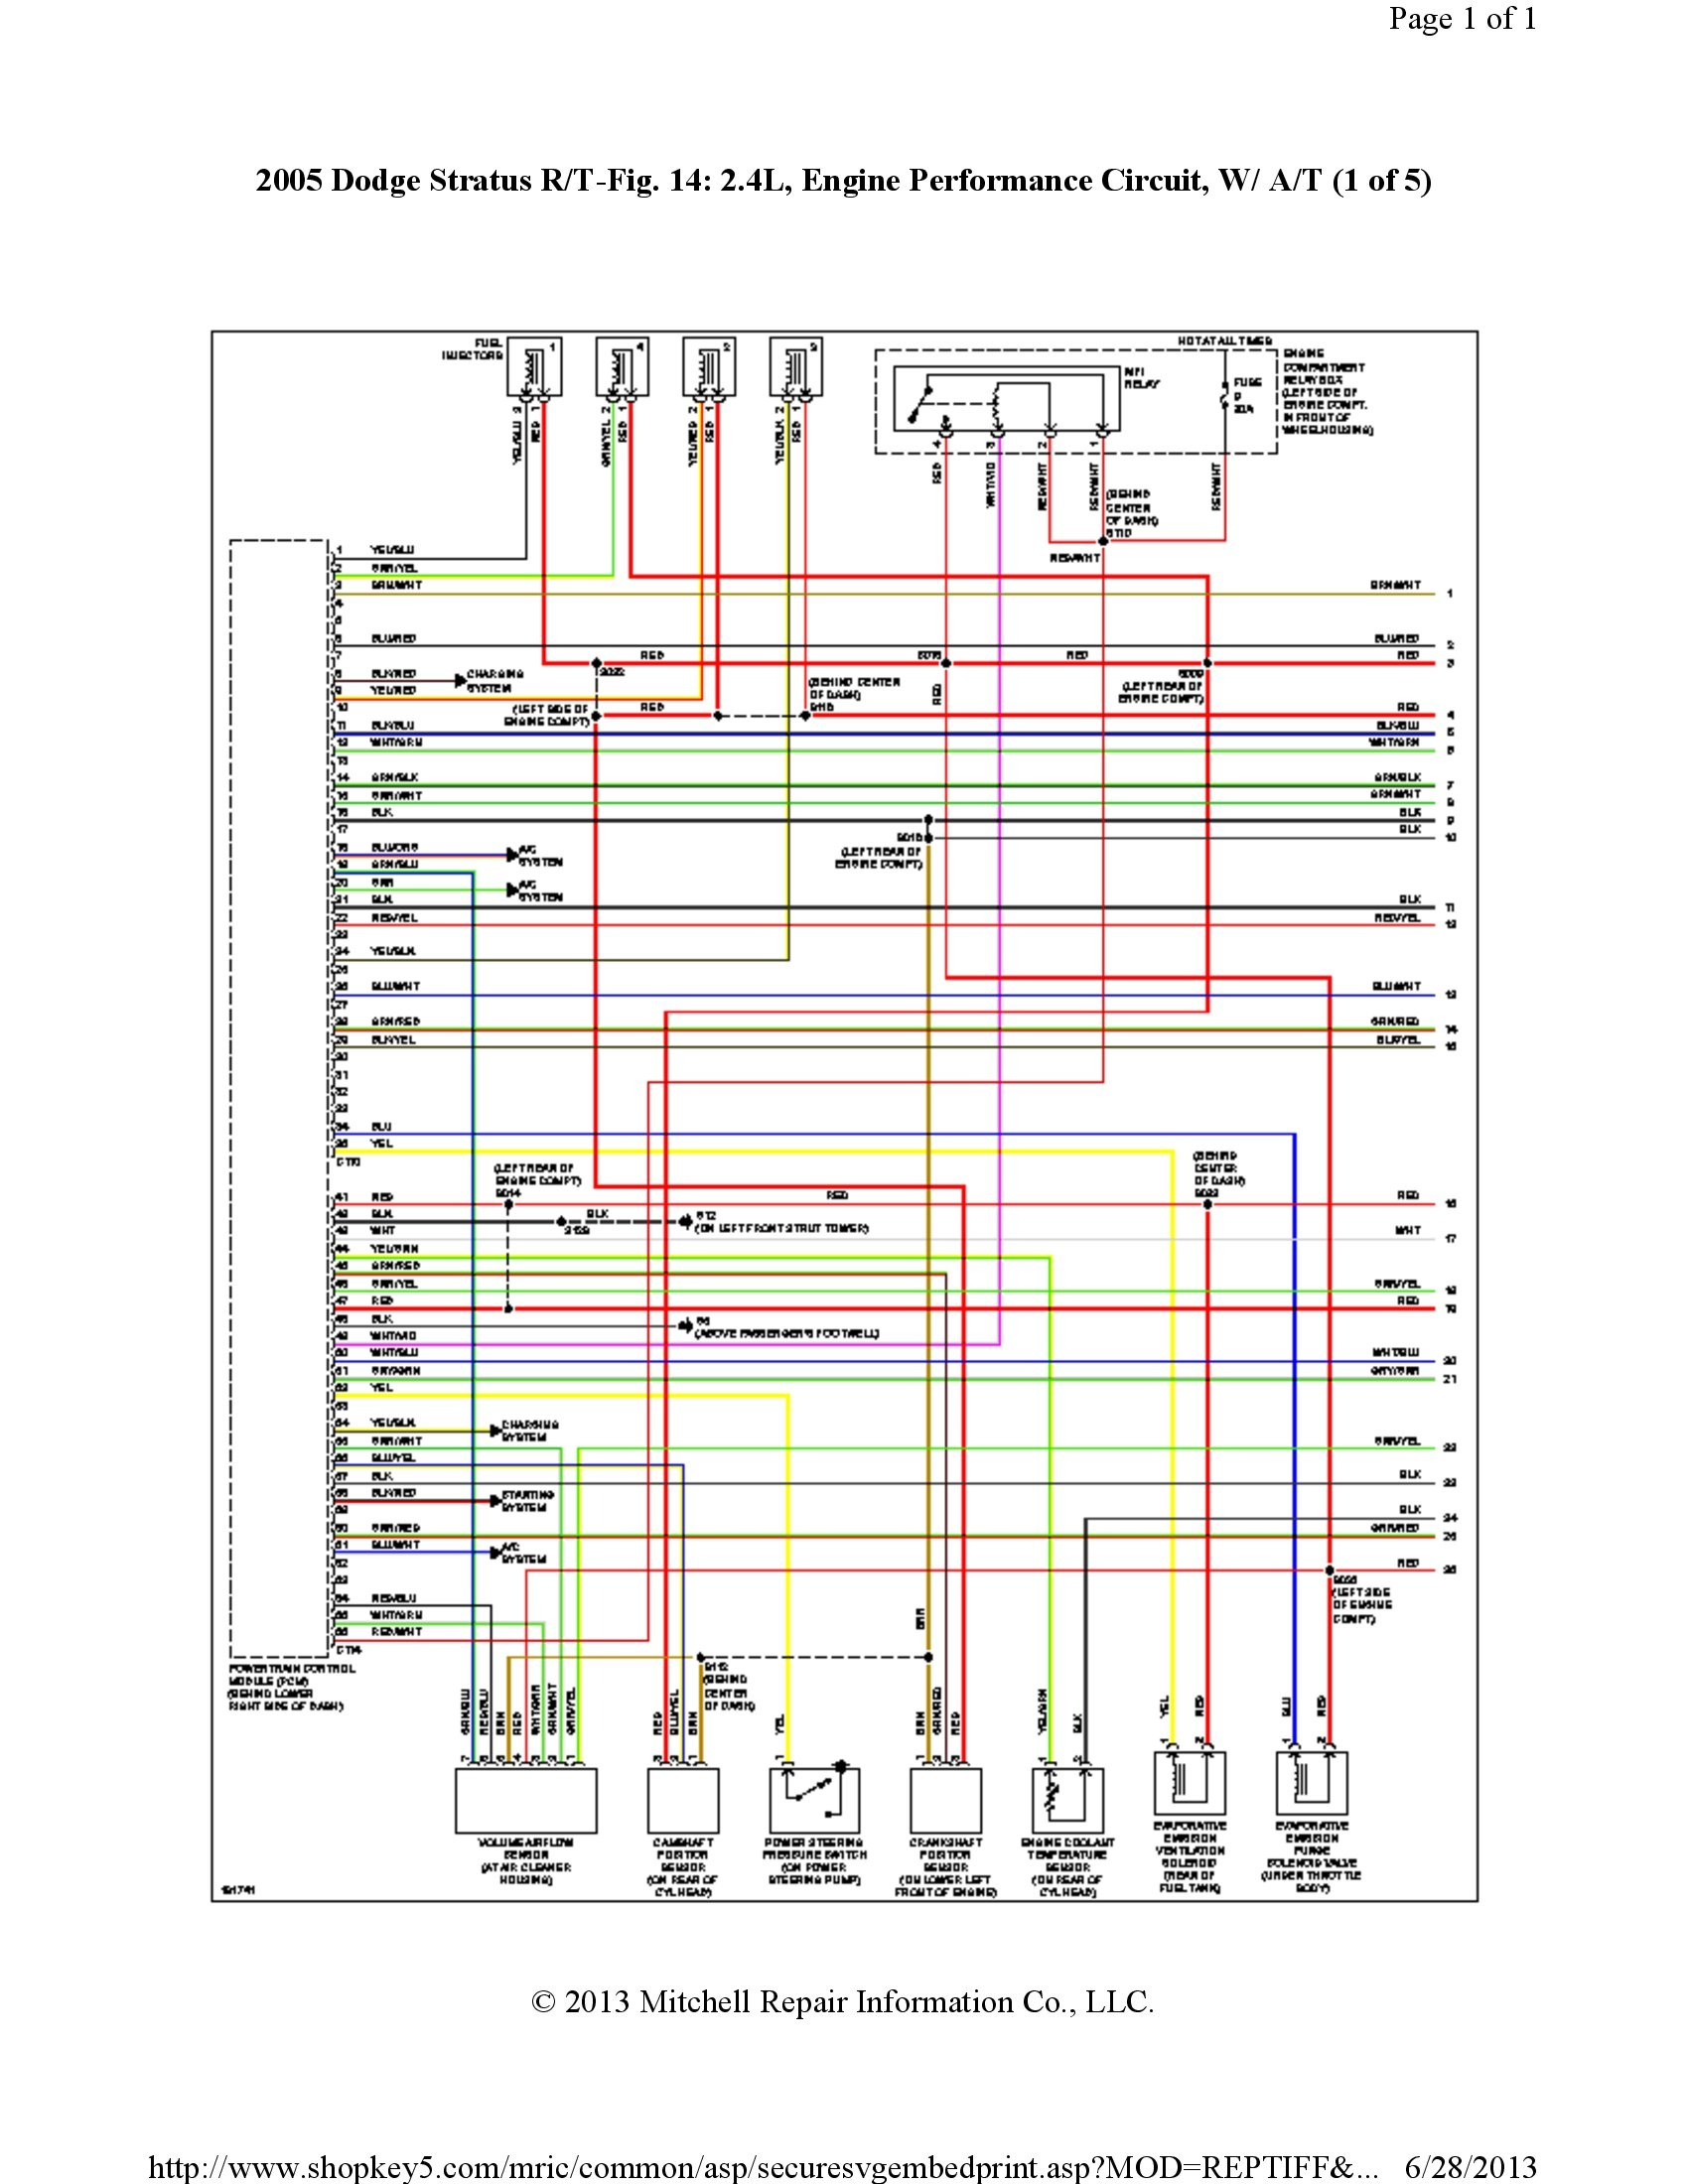 2003 dodge durango stereo wiring diagram warn winch for atv 5 4l engine free download library